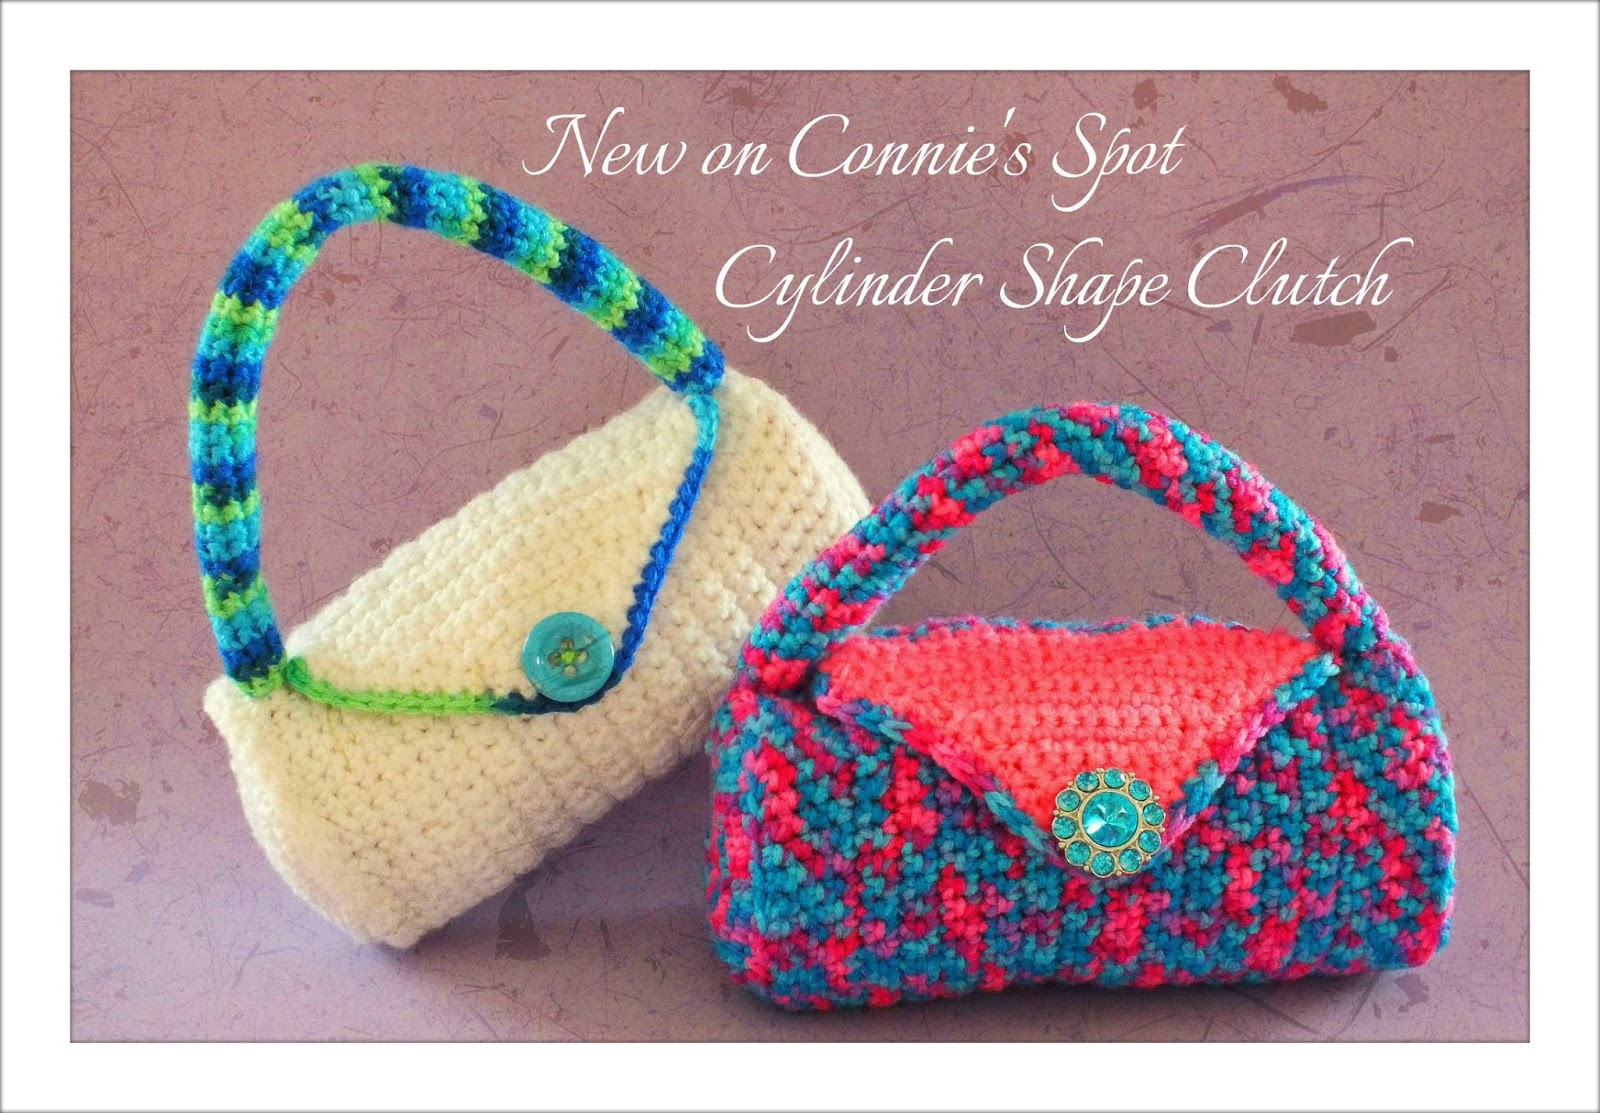 New Crochet Purse Patterns : crochet pattern cylinder clutch bag pattern by connie hughes designs